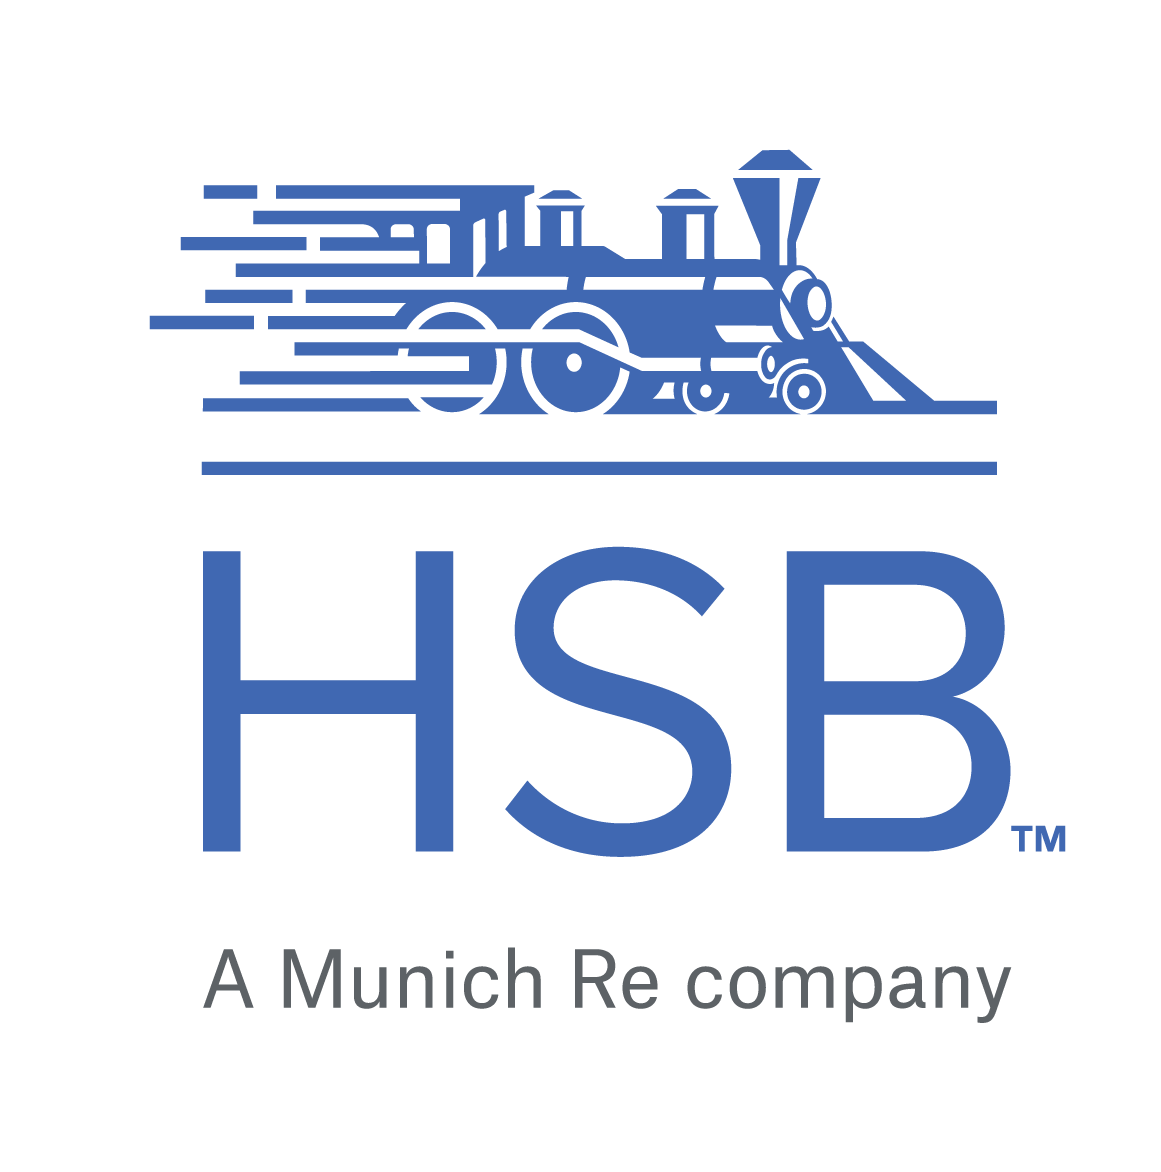 Logos for Munich RE Group and Hartford Steam Boiler